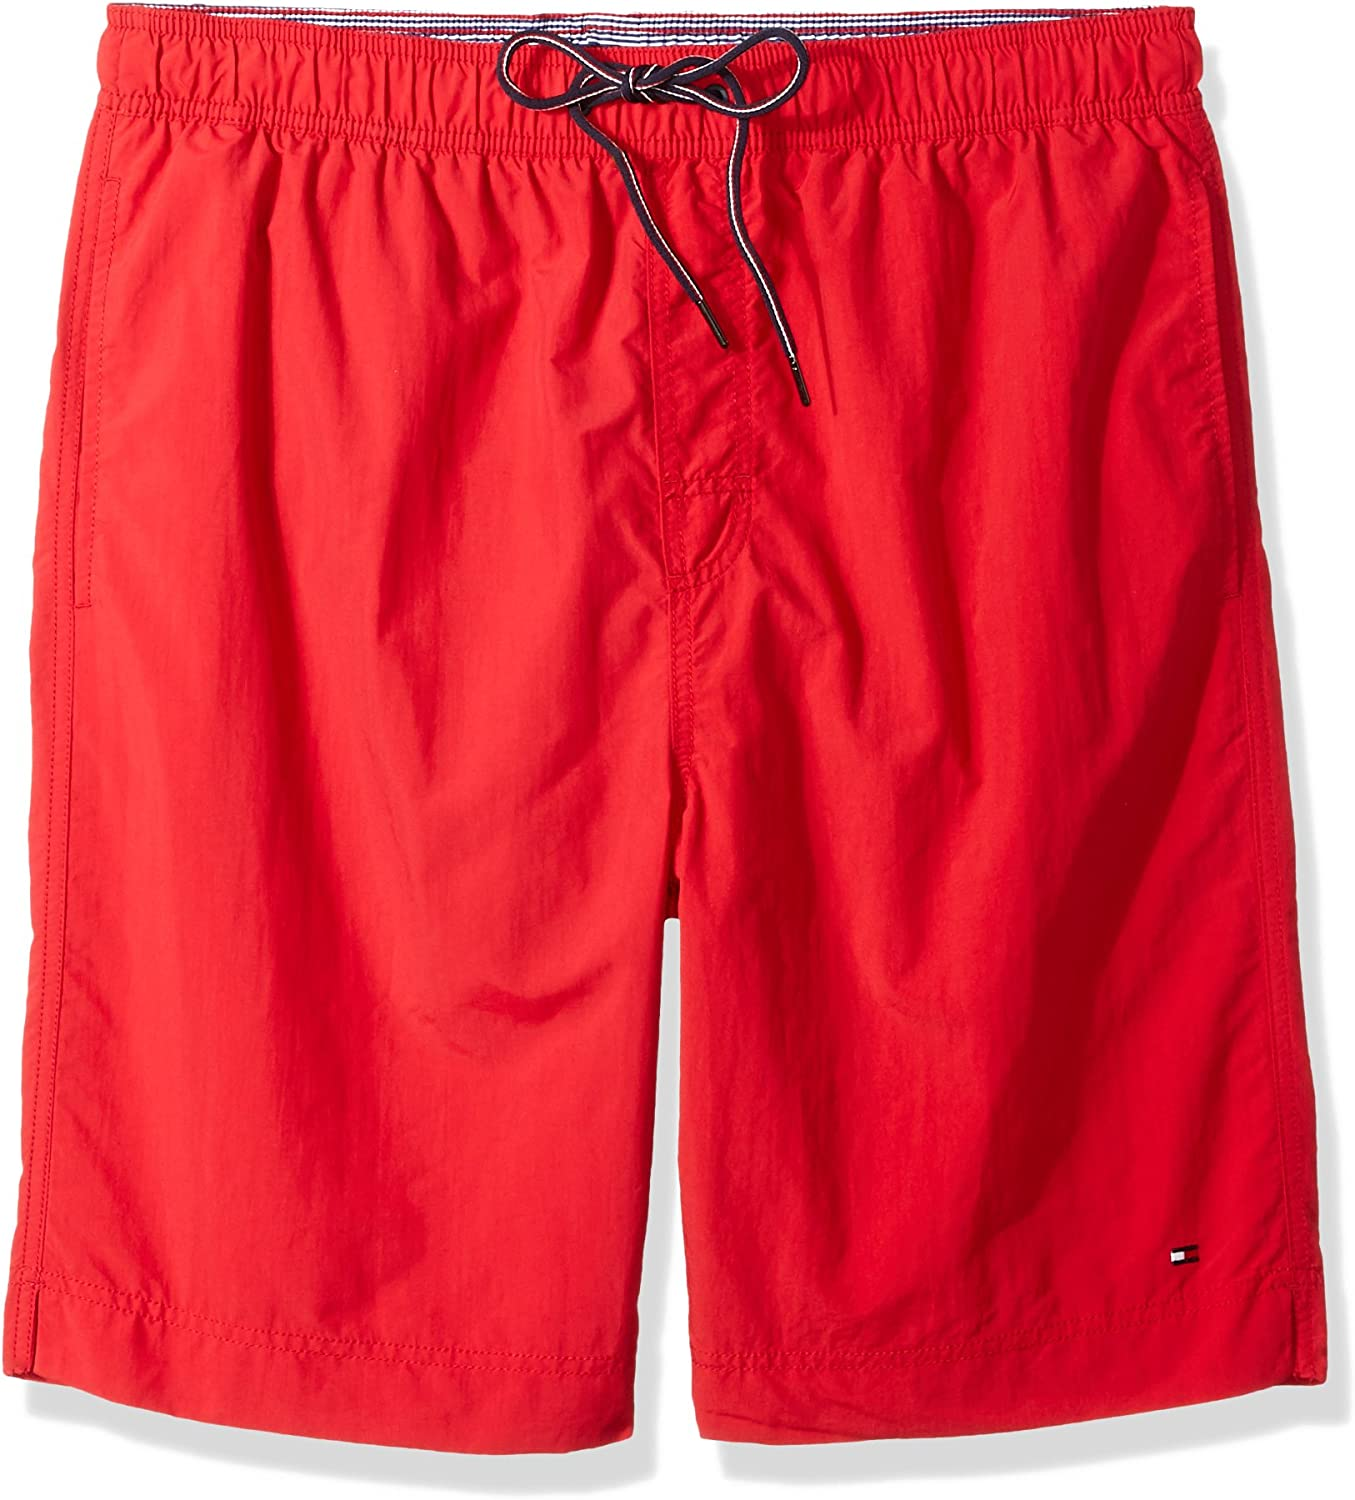 Tommy Hilfiger Men's 67% OFF of fixed price Big and Ranking TOP10 Swim Trunks Tall